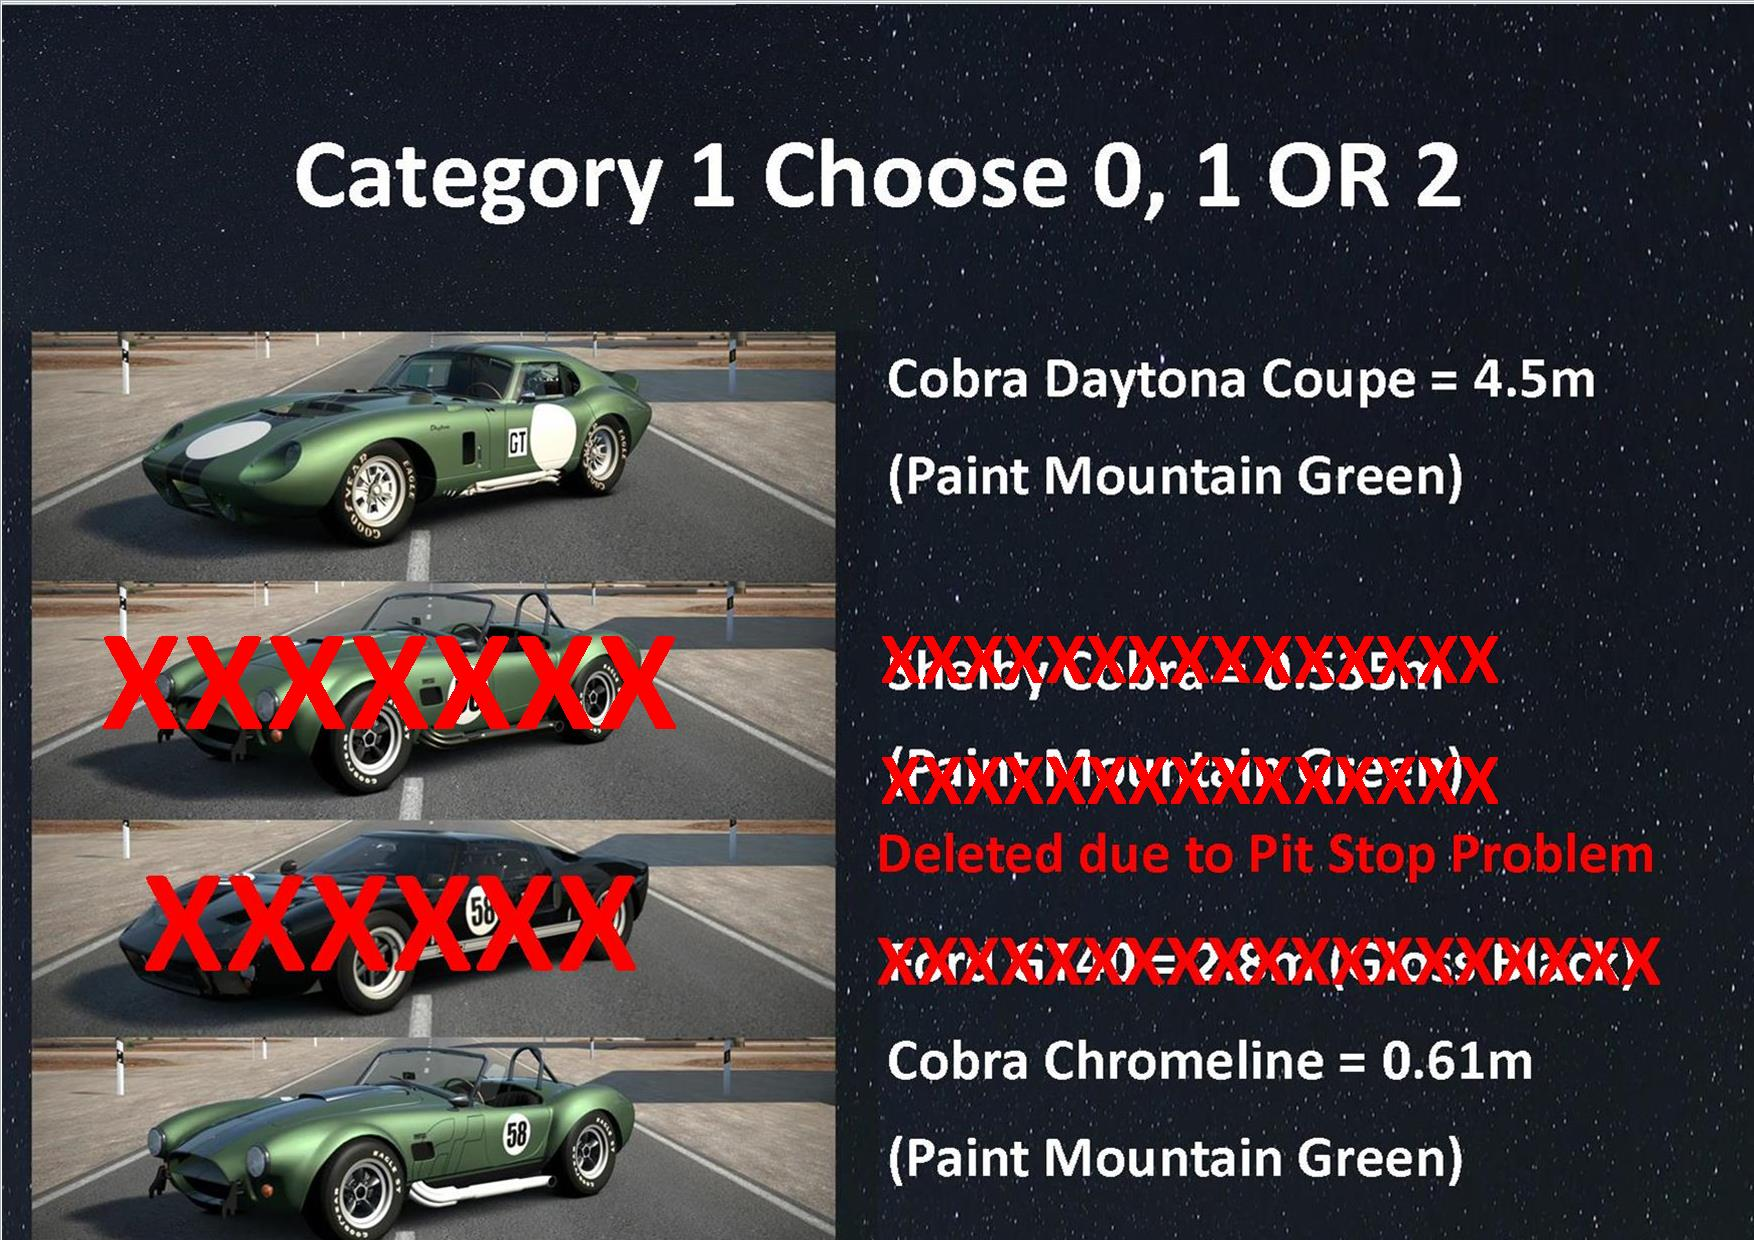 Category 1 Extra Cars Final Amended.jpg